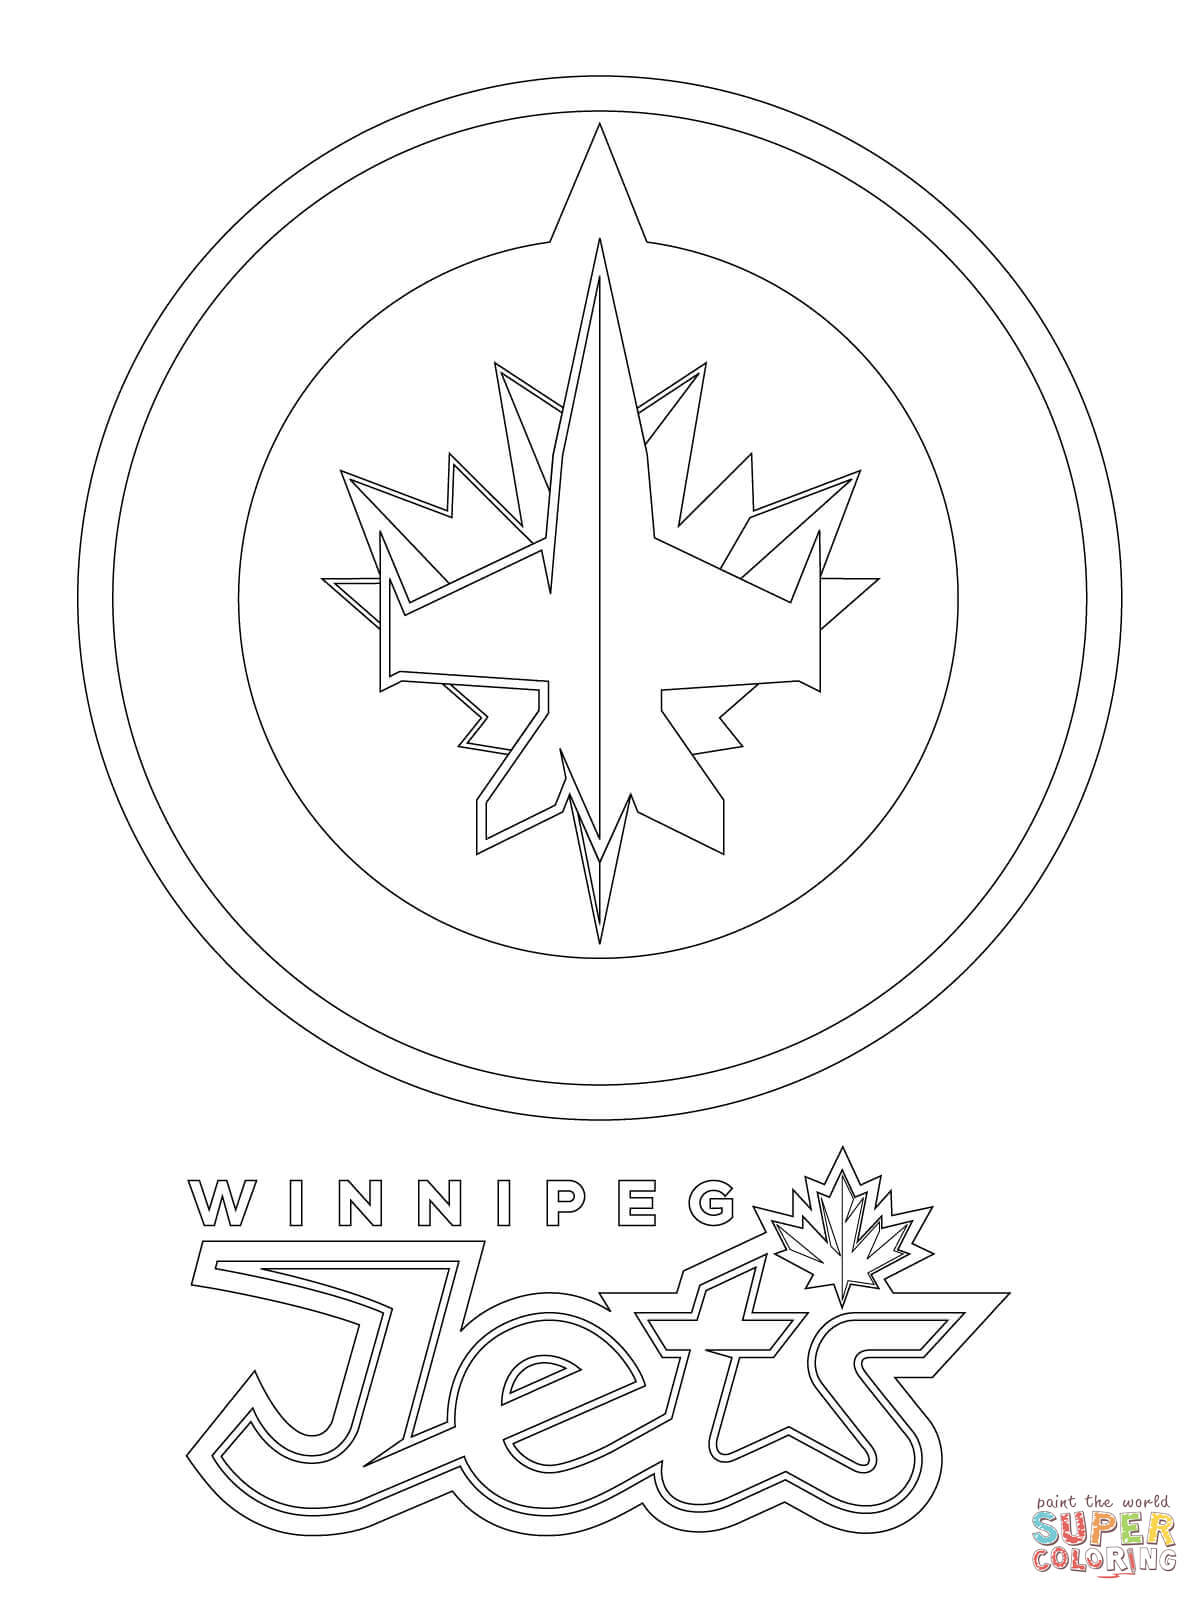 winnipeg jets logo coloring page free printable coloring pages